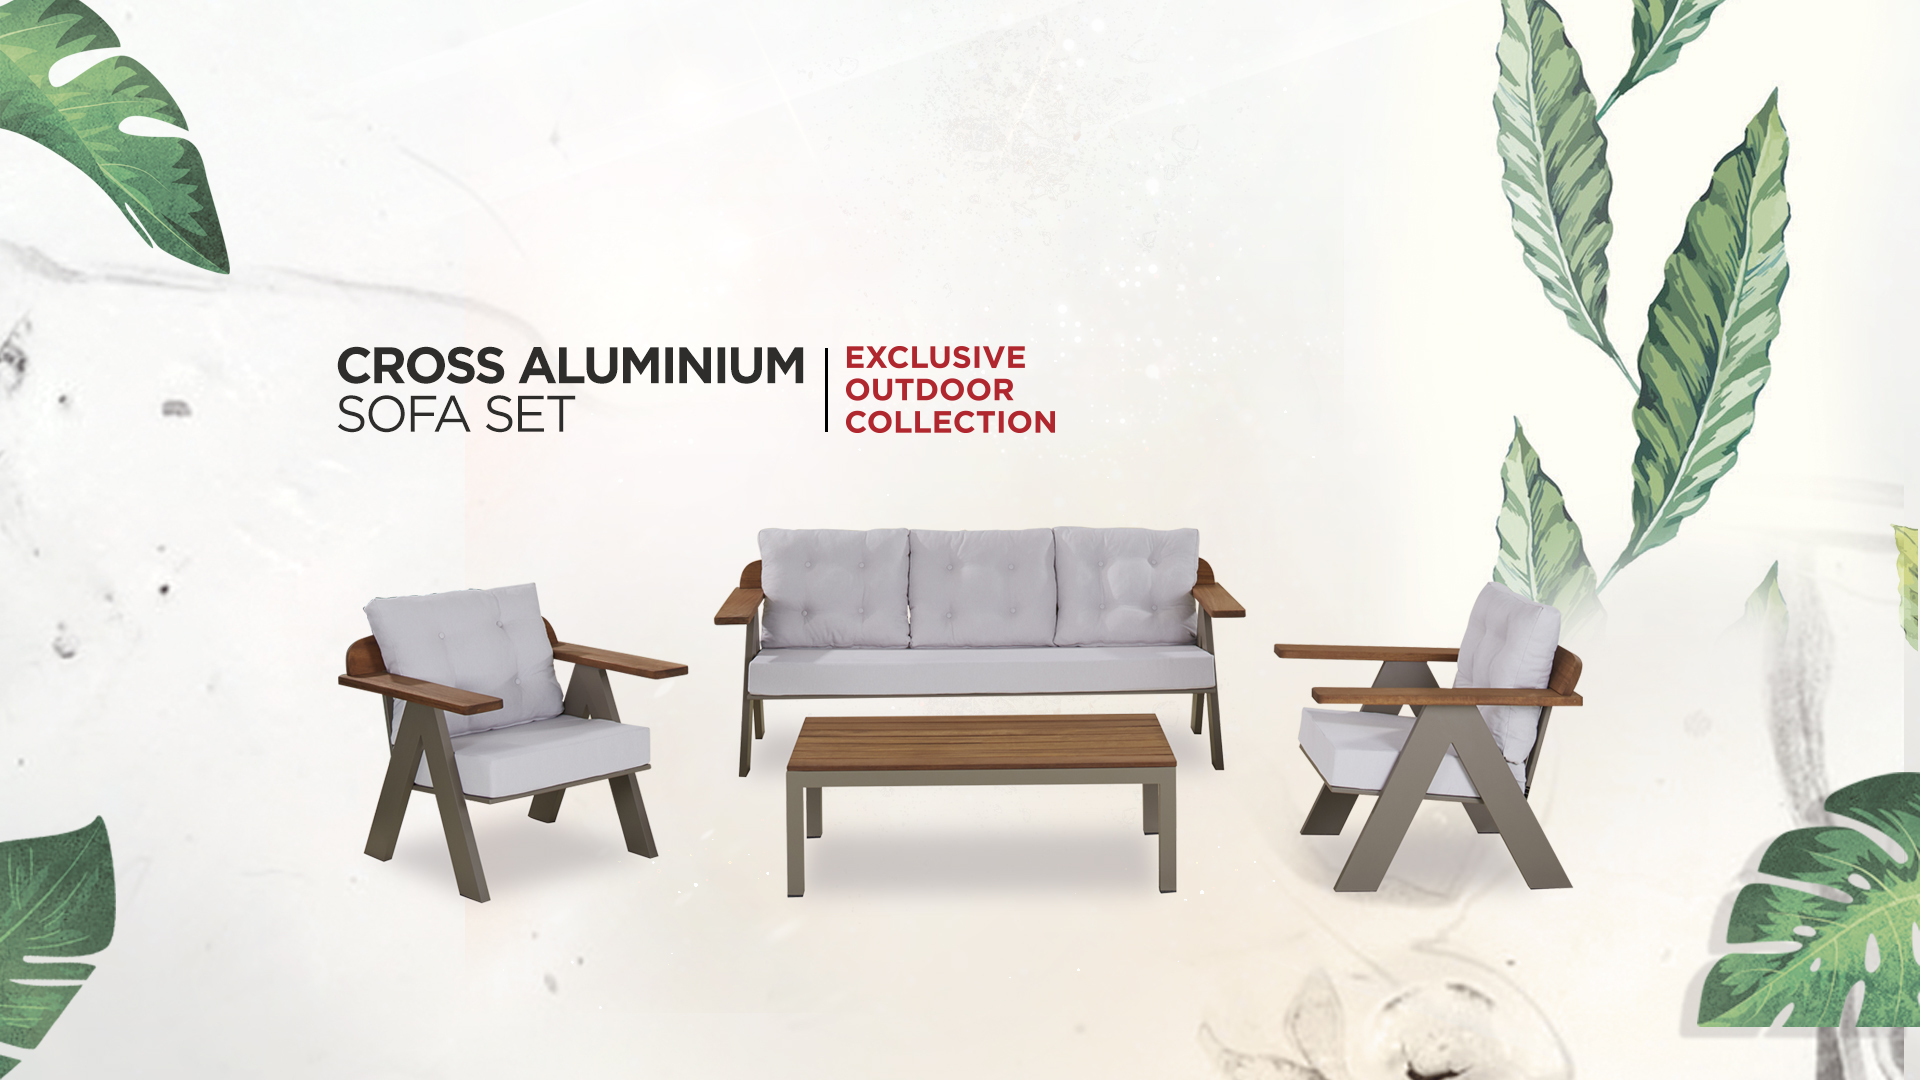 Cross Aluminium Sofa Set